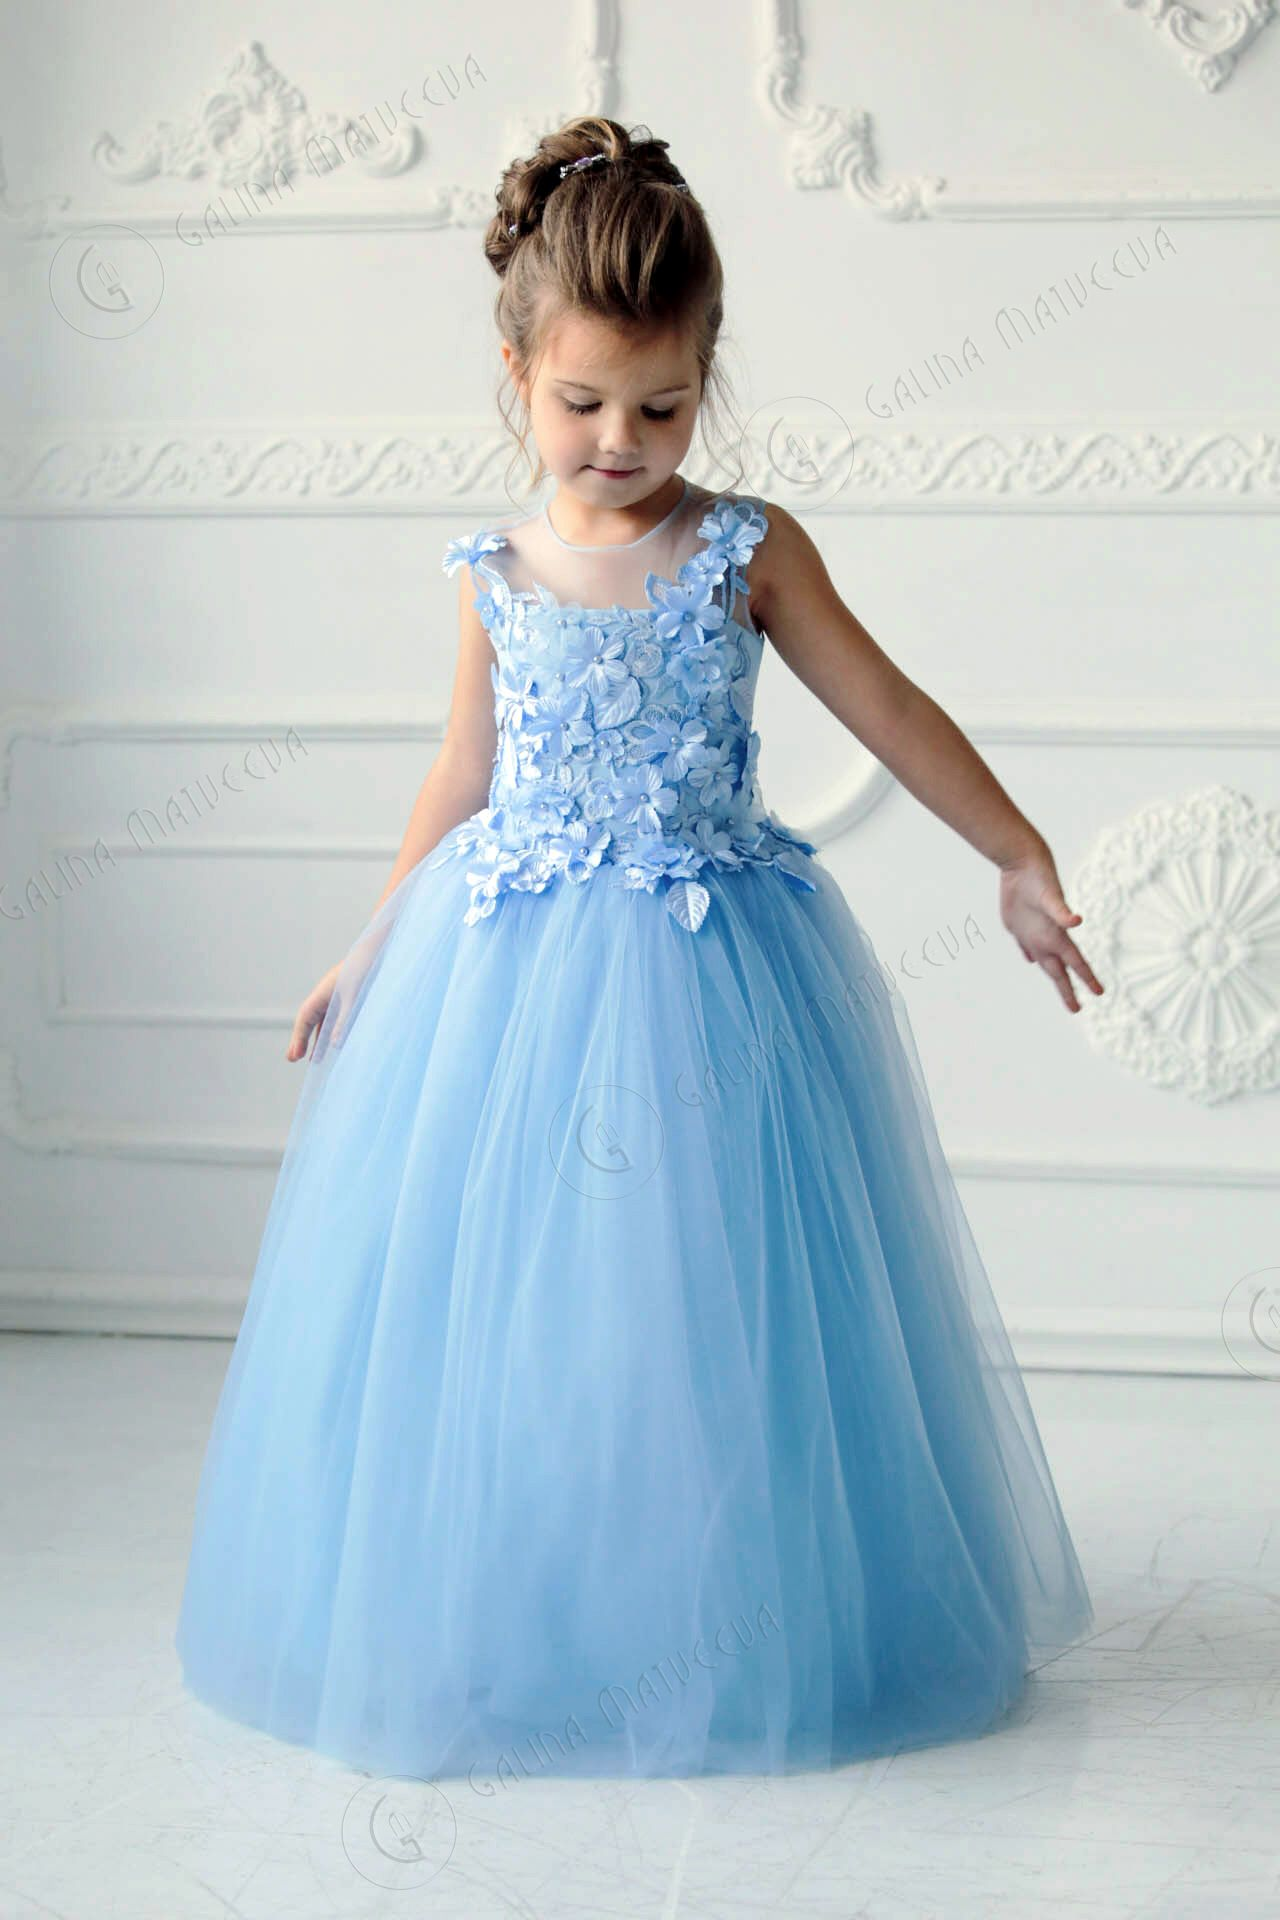 Wedding Girl Toddler Bridesmaid Dresses Dress Formal Tutu Baby Kid Party Flower